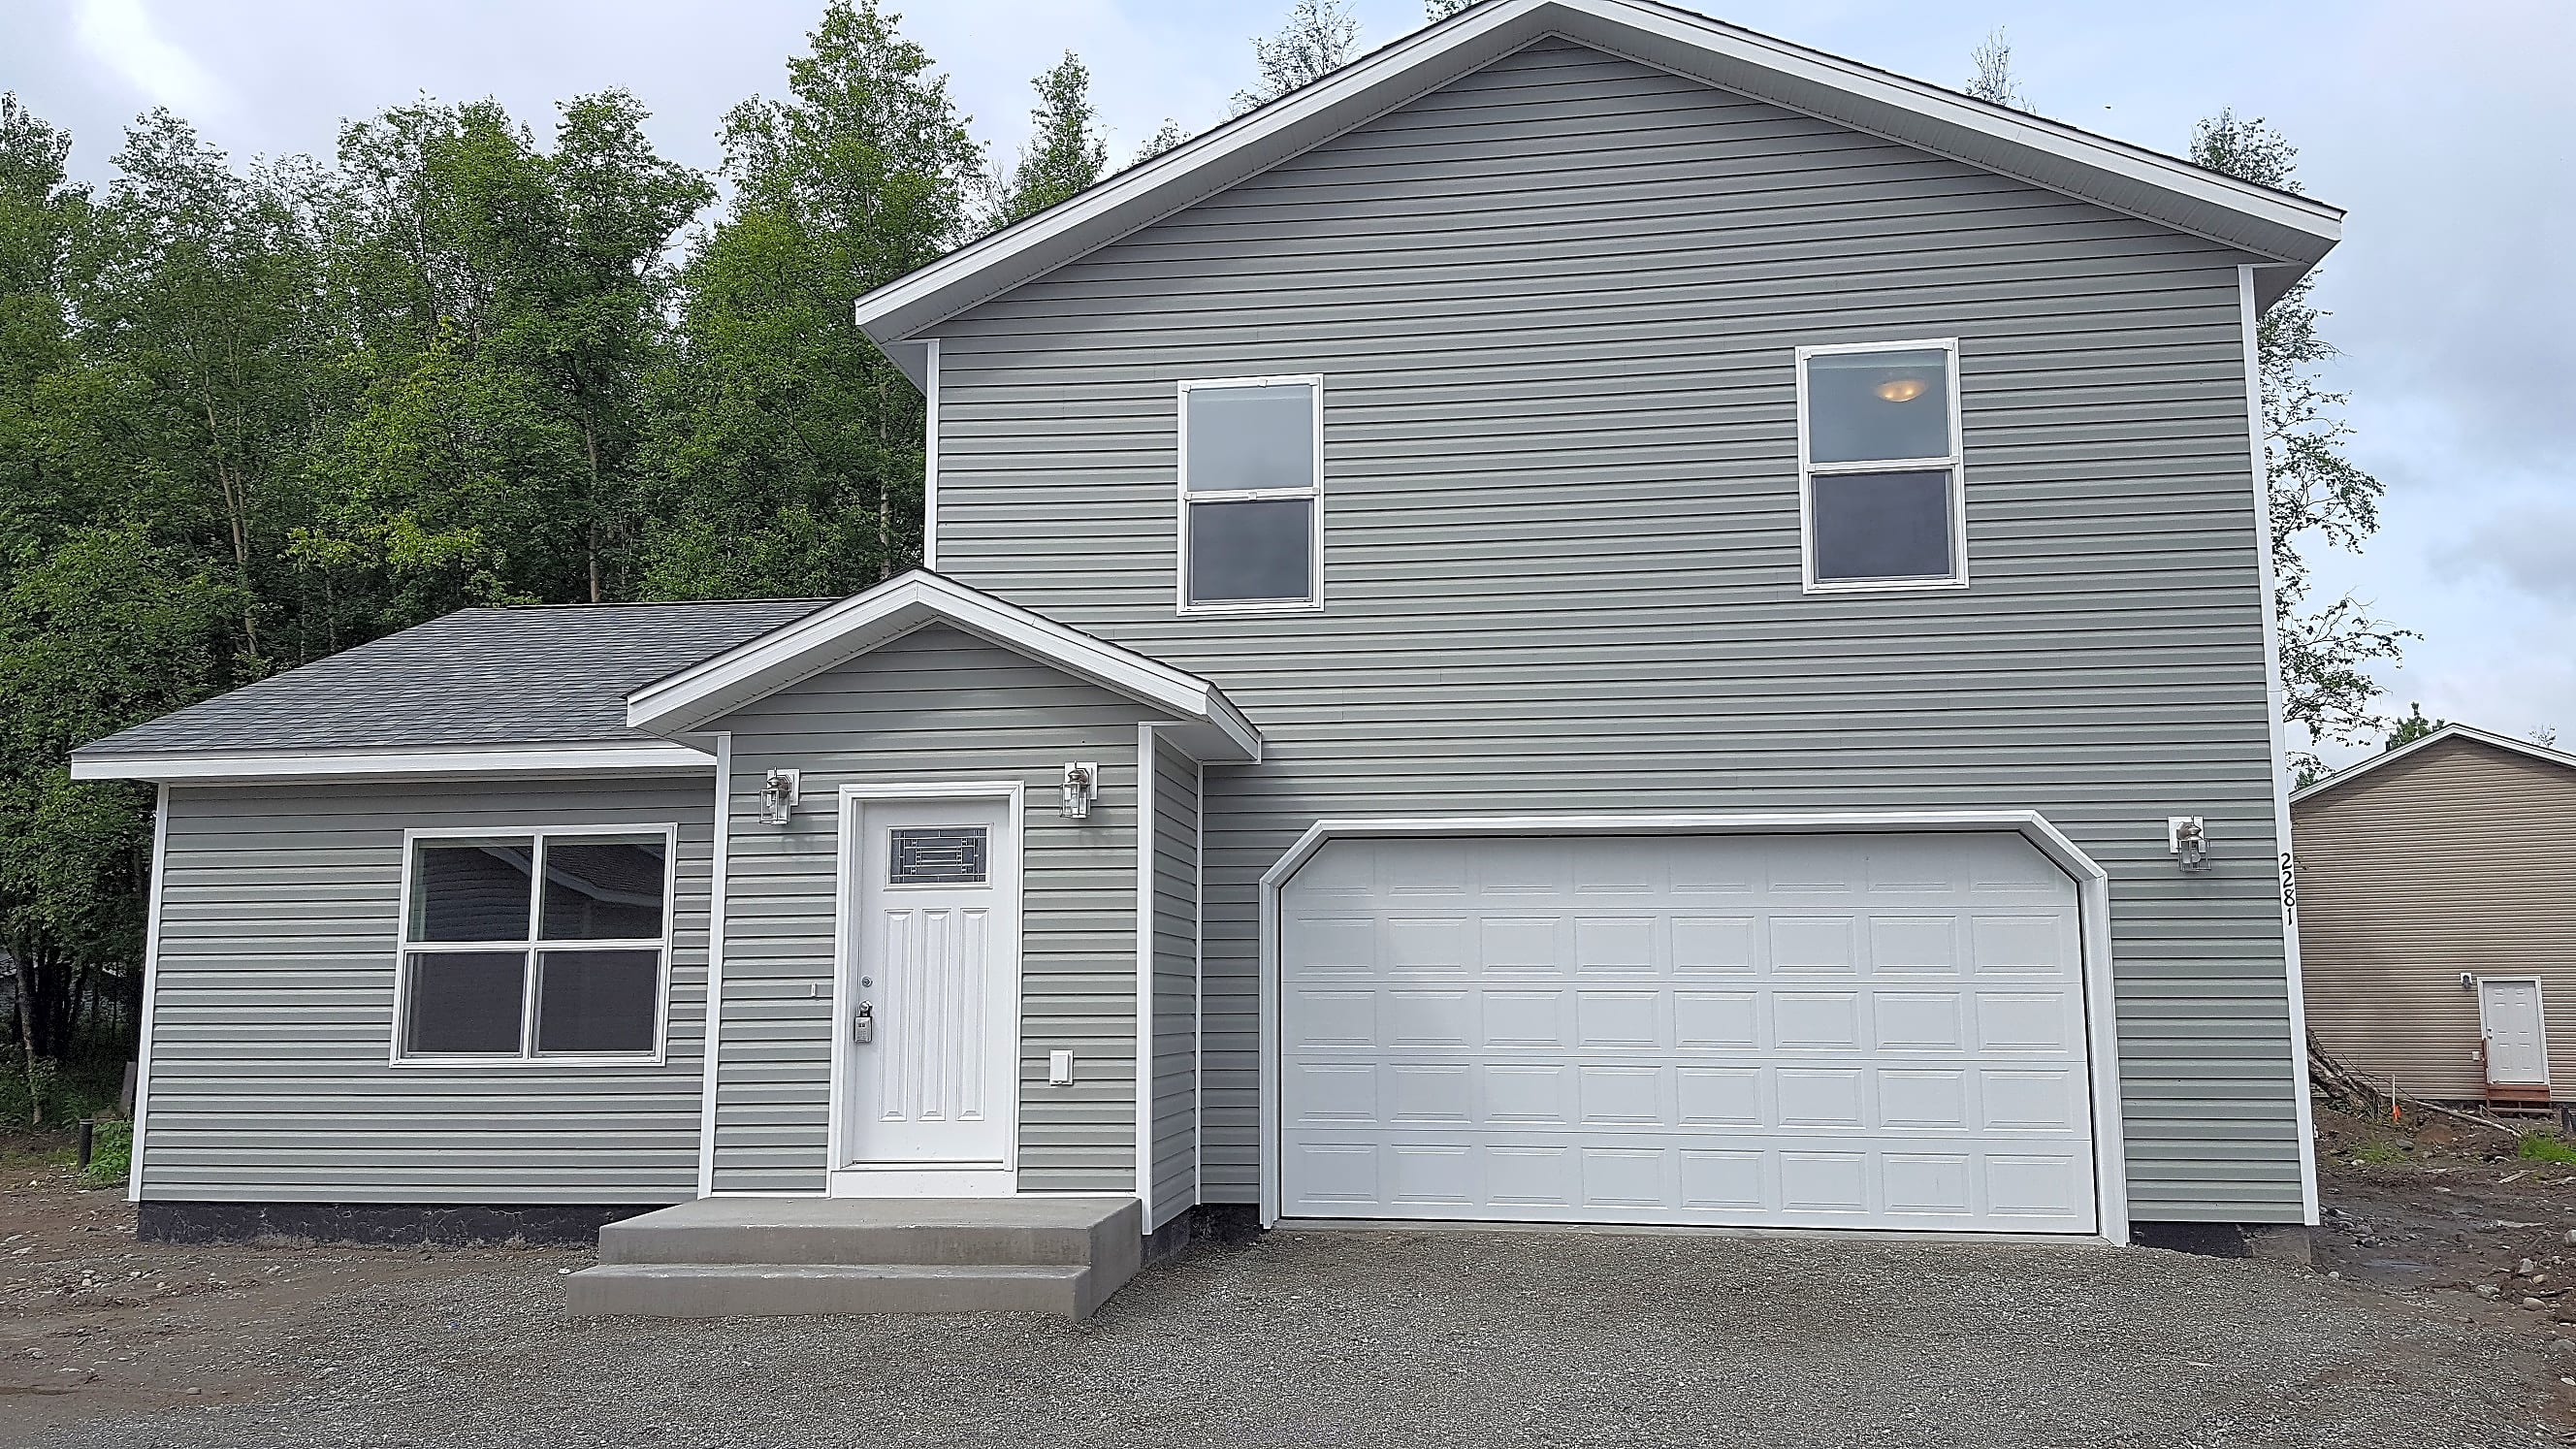 Wasilla Houses For Rent In Wasilla Homes For Rent Alaska